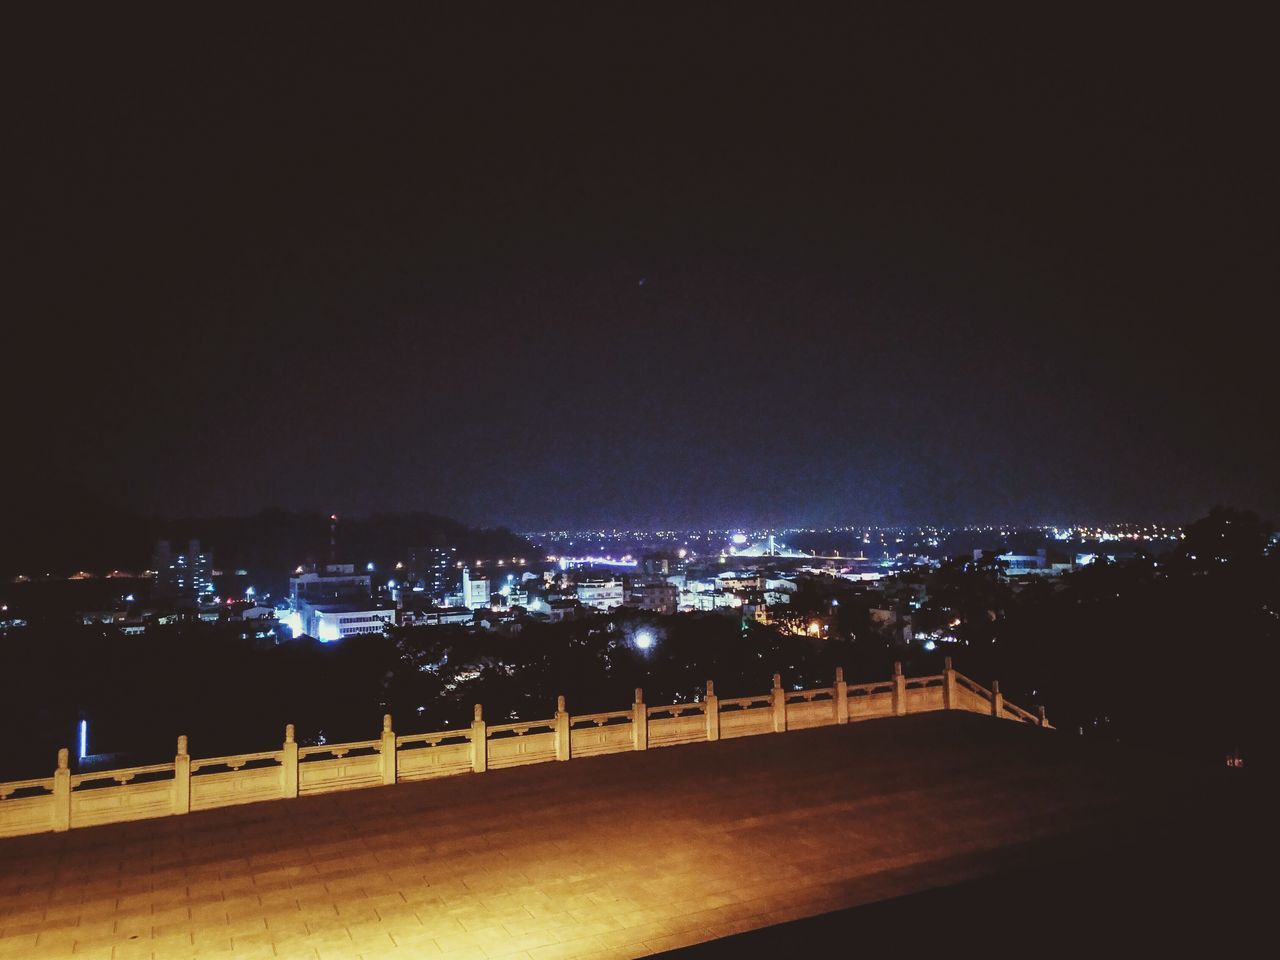 night, illuminated, no people, architecture, built structure, road, outdoors, building exterior, sky, nature, city